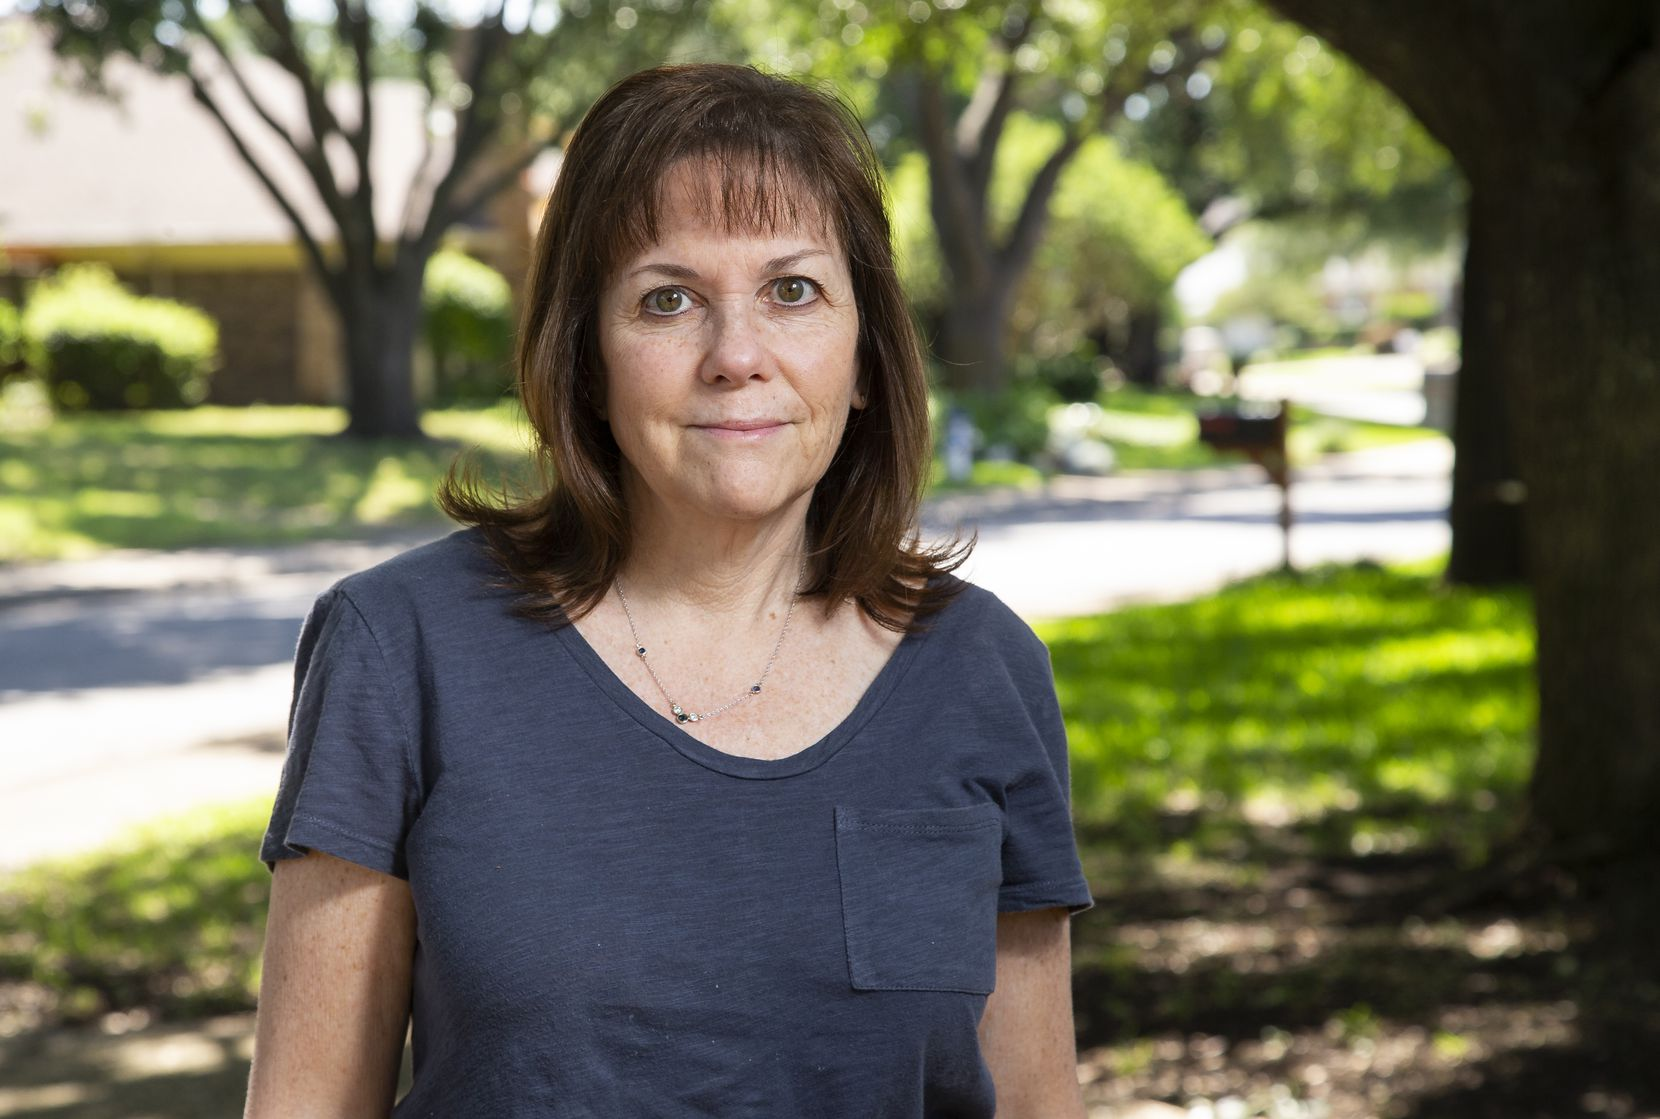 Audrey Pincu poses for a portrait outside of her home in Dallas on Wednesday, June 24, 2020. Pincu's 19-year-old son has Crohn's disease, which leaves his immune system more susceptible, so without vote by mail she said she's hesitant to vote in person. (Juan Figueroa/The Dallas Morning News)